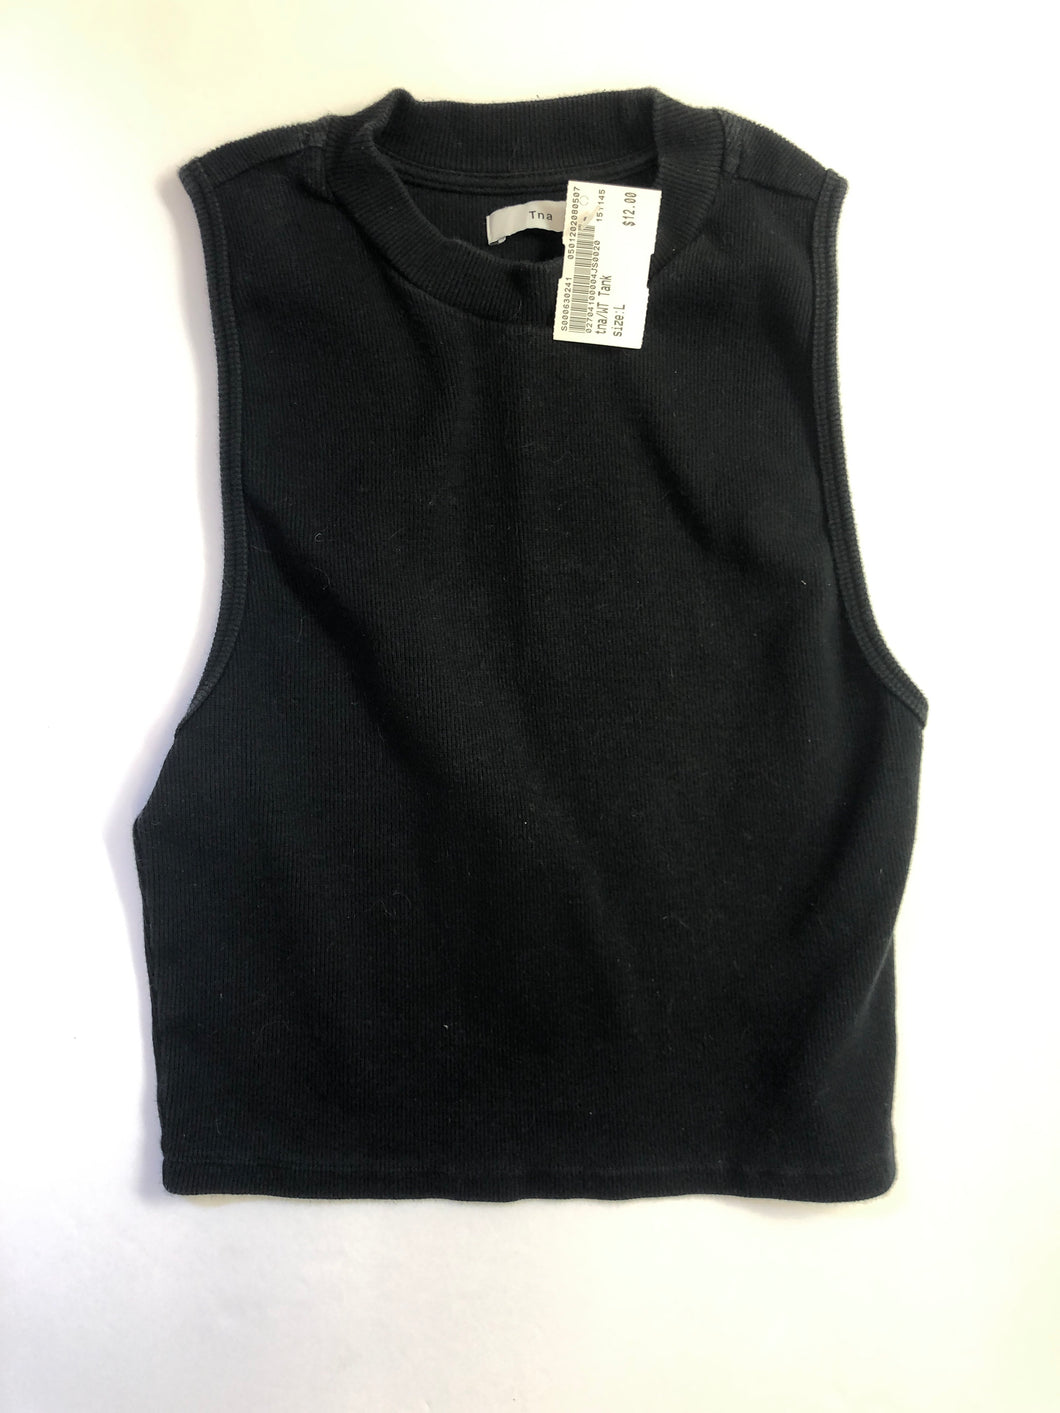 Gently Used Women's TNA Top Size L